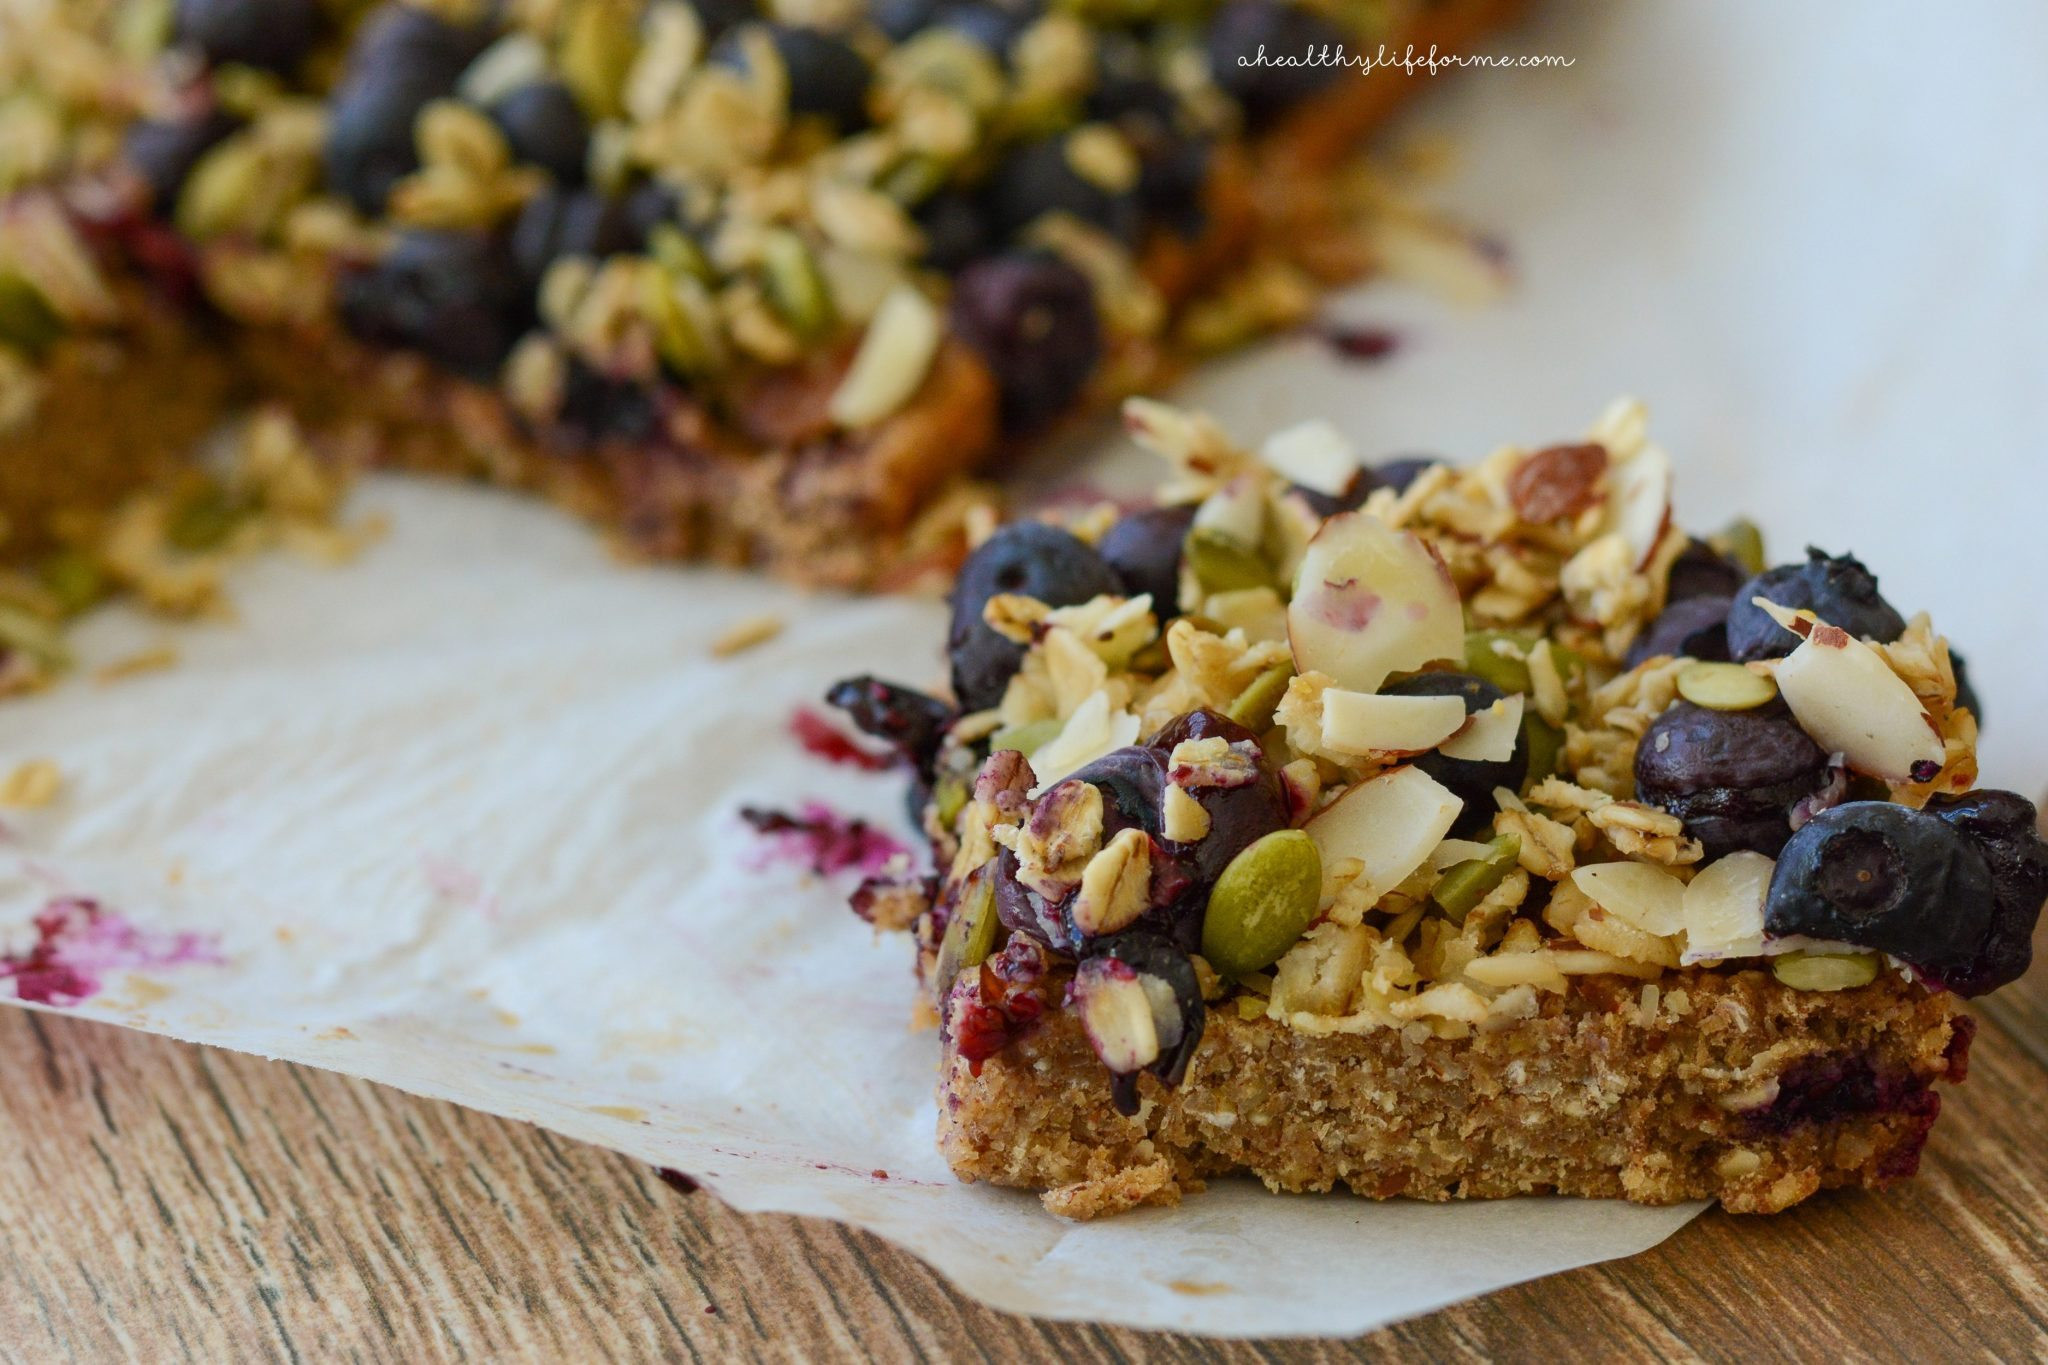 Oatmeal Breakfast Bars Healthy  Oatmeal Superfood Breakfast Bars A Healthy Life For Me